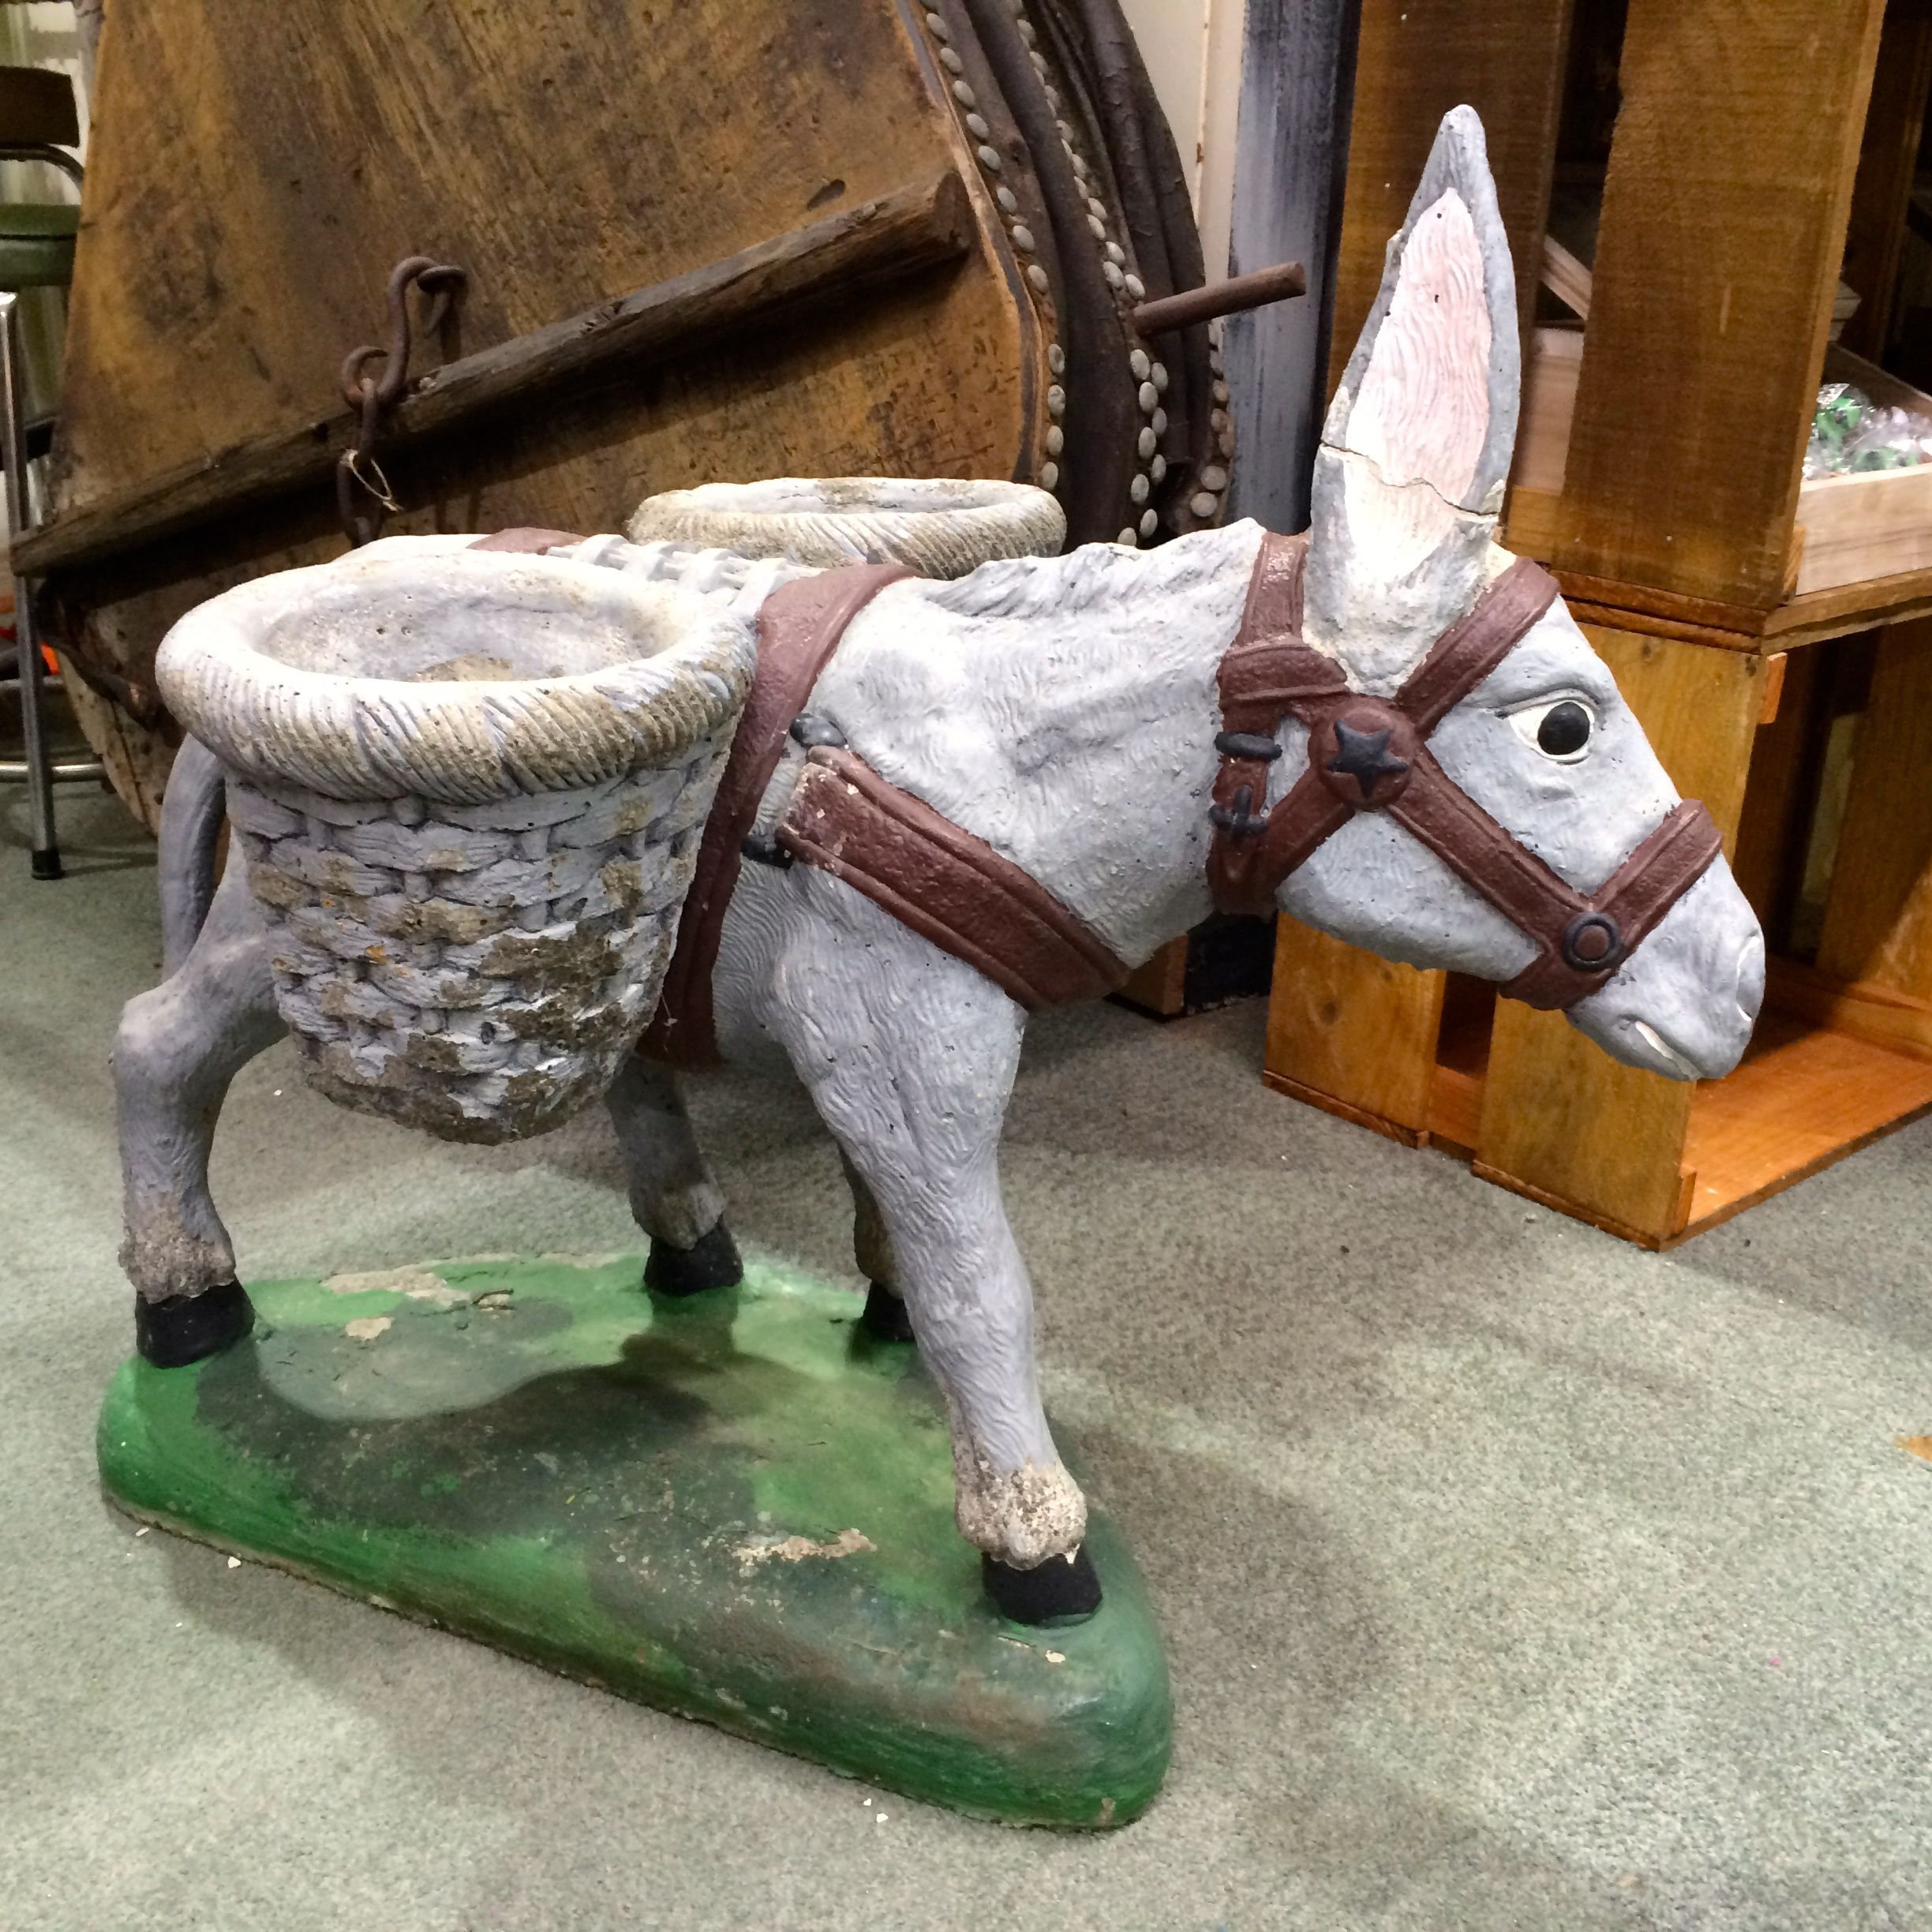 Rare Vintage Concrete Donkey Planter, Roadside Retro, The Amazing Mill  Markets, Daylesford